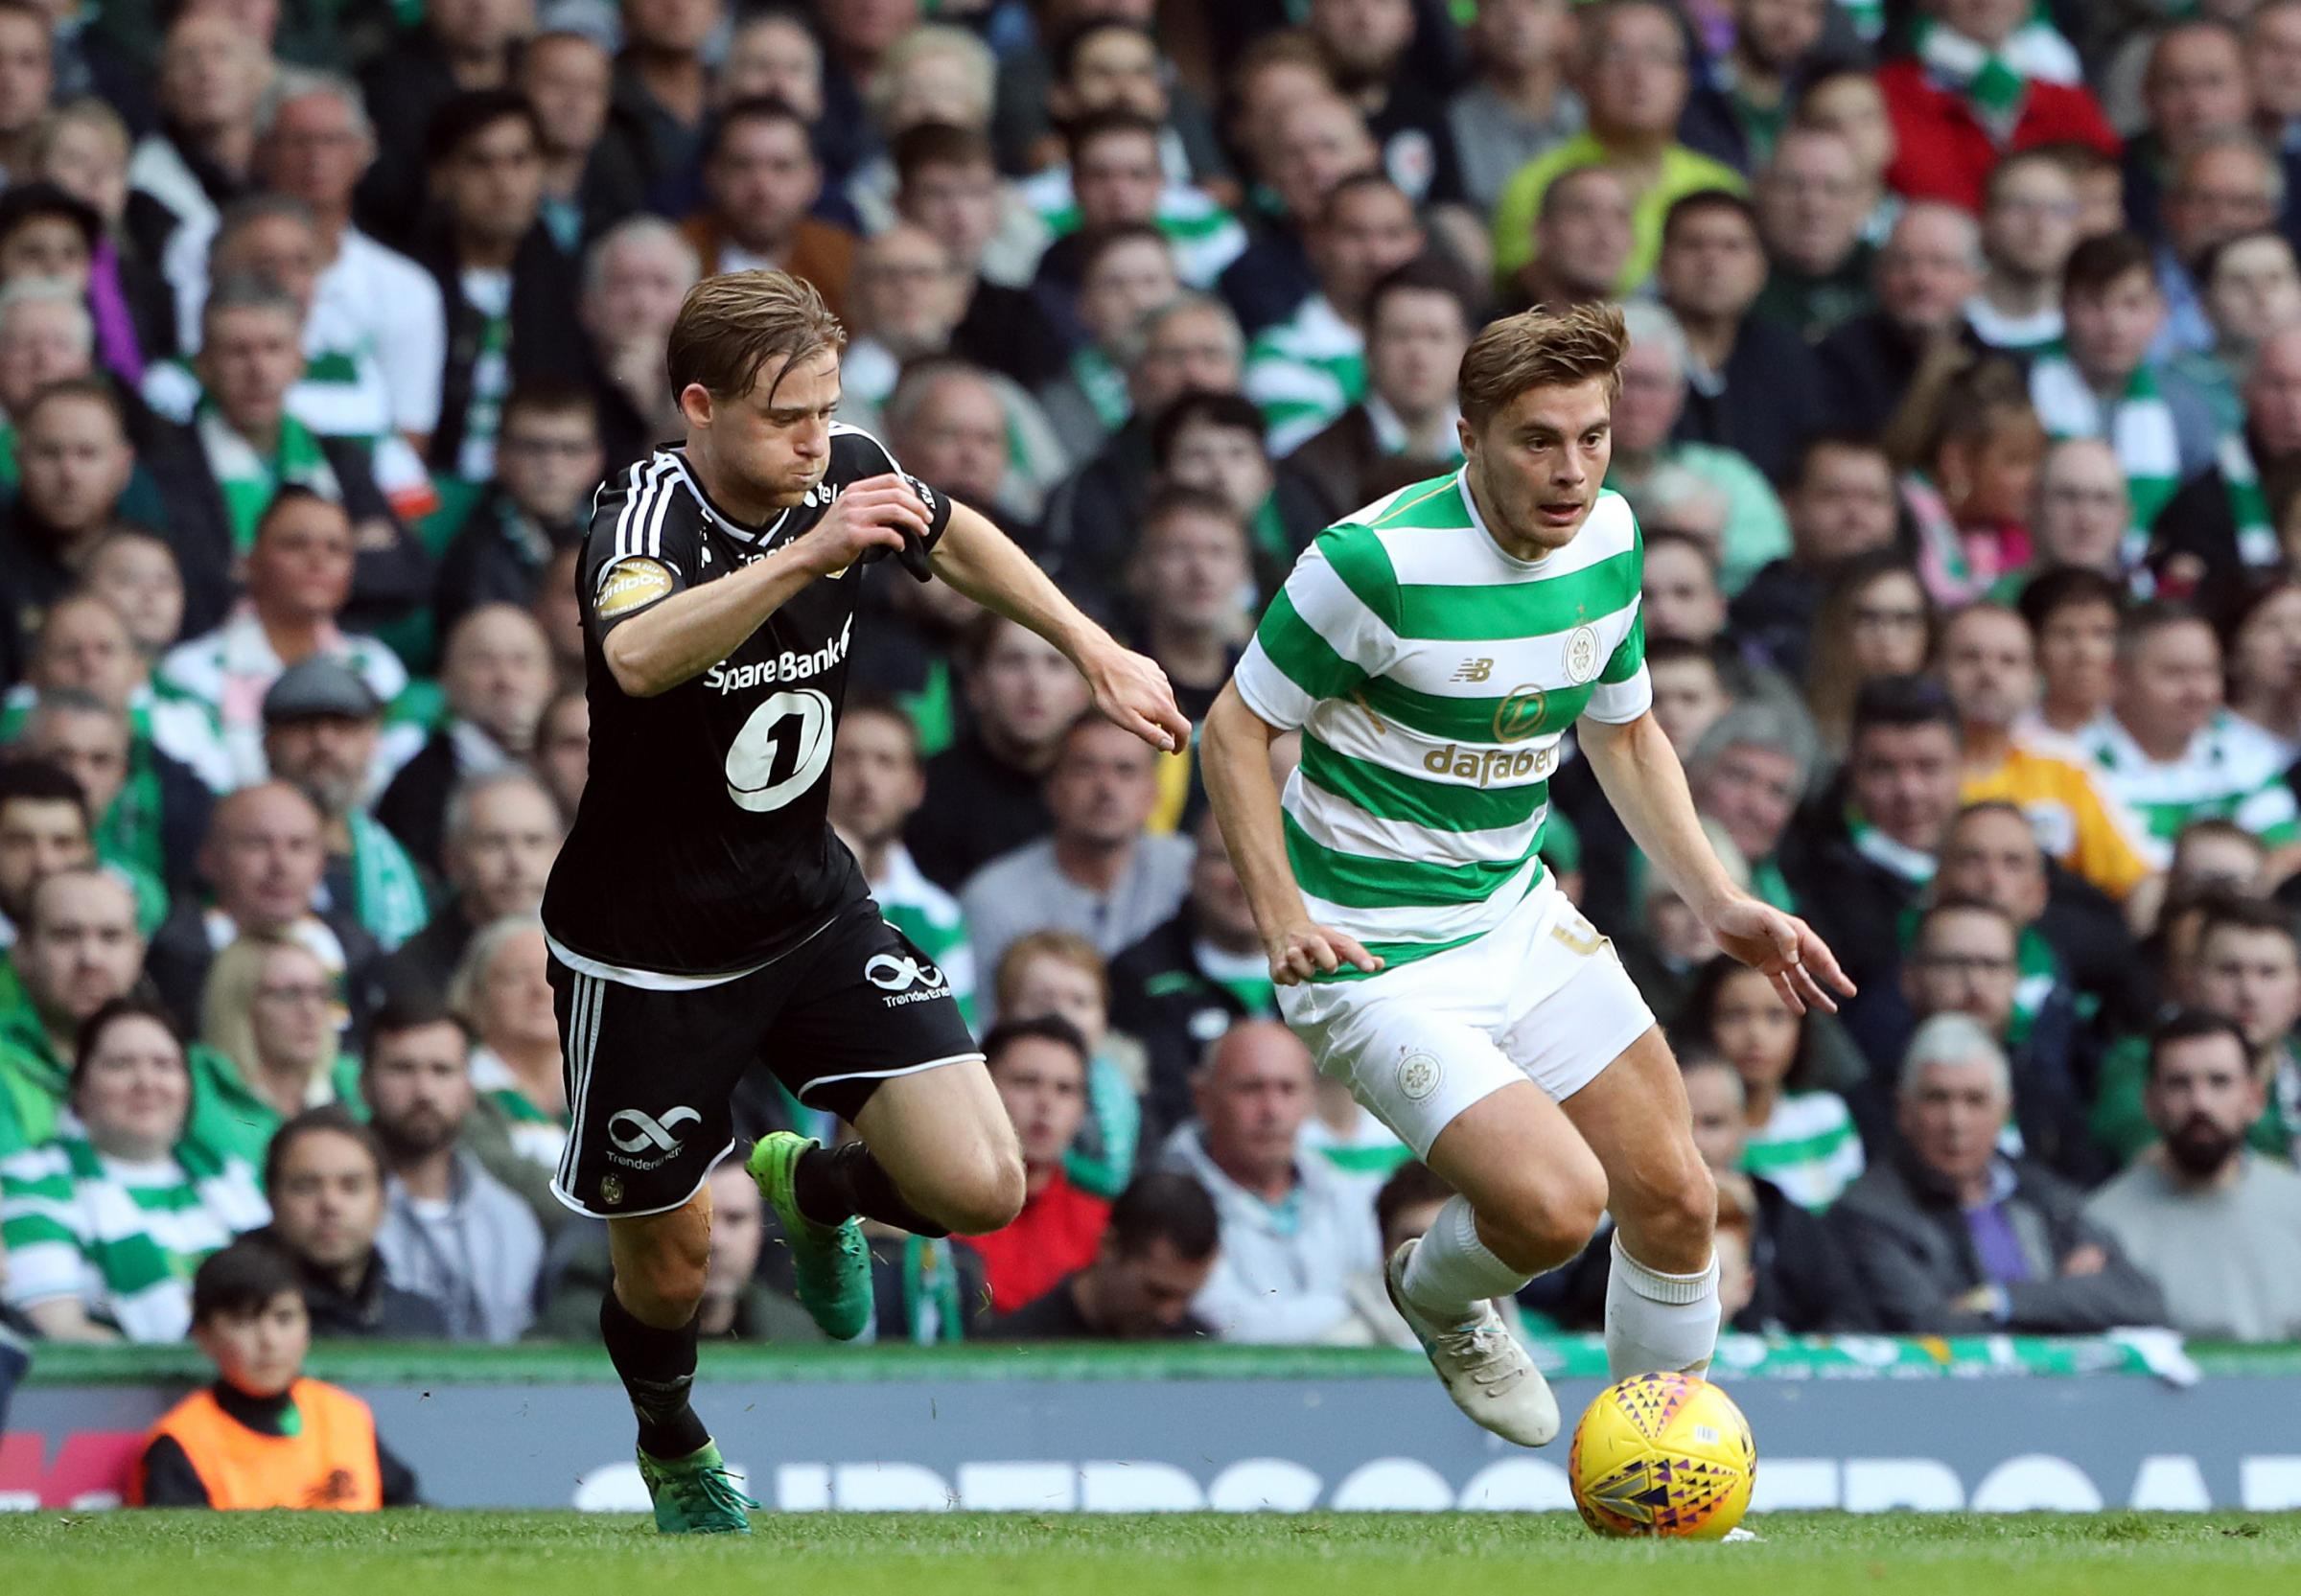 Celtic's James Forrest and Rosenborg's Yann-Erik de Lanlay battle for the ball during the UEFA Champions League third round qualifying round, first leg match at Celtic Park, Glasgow..